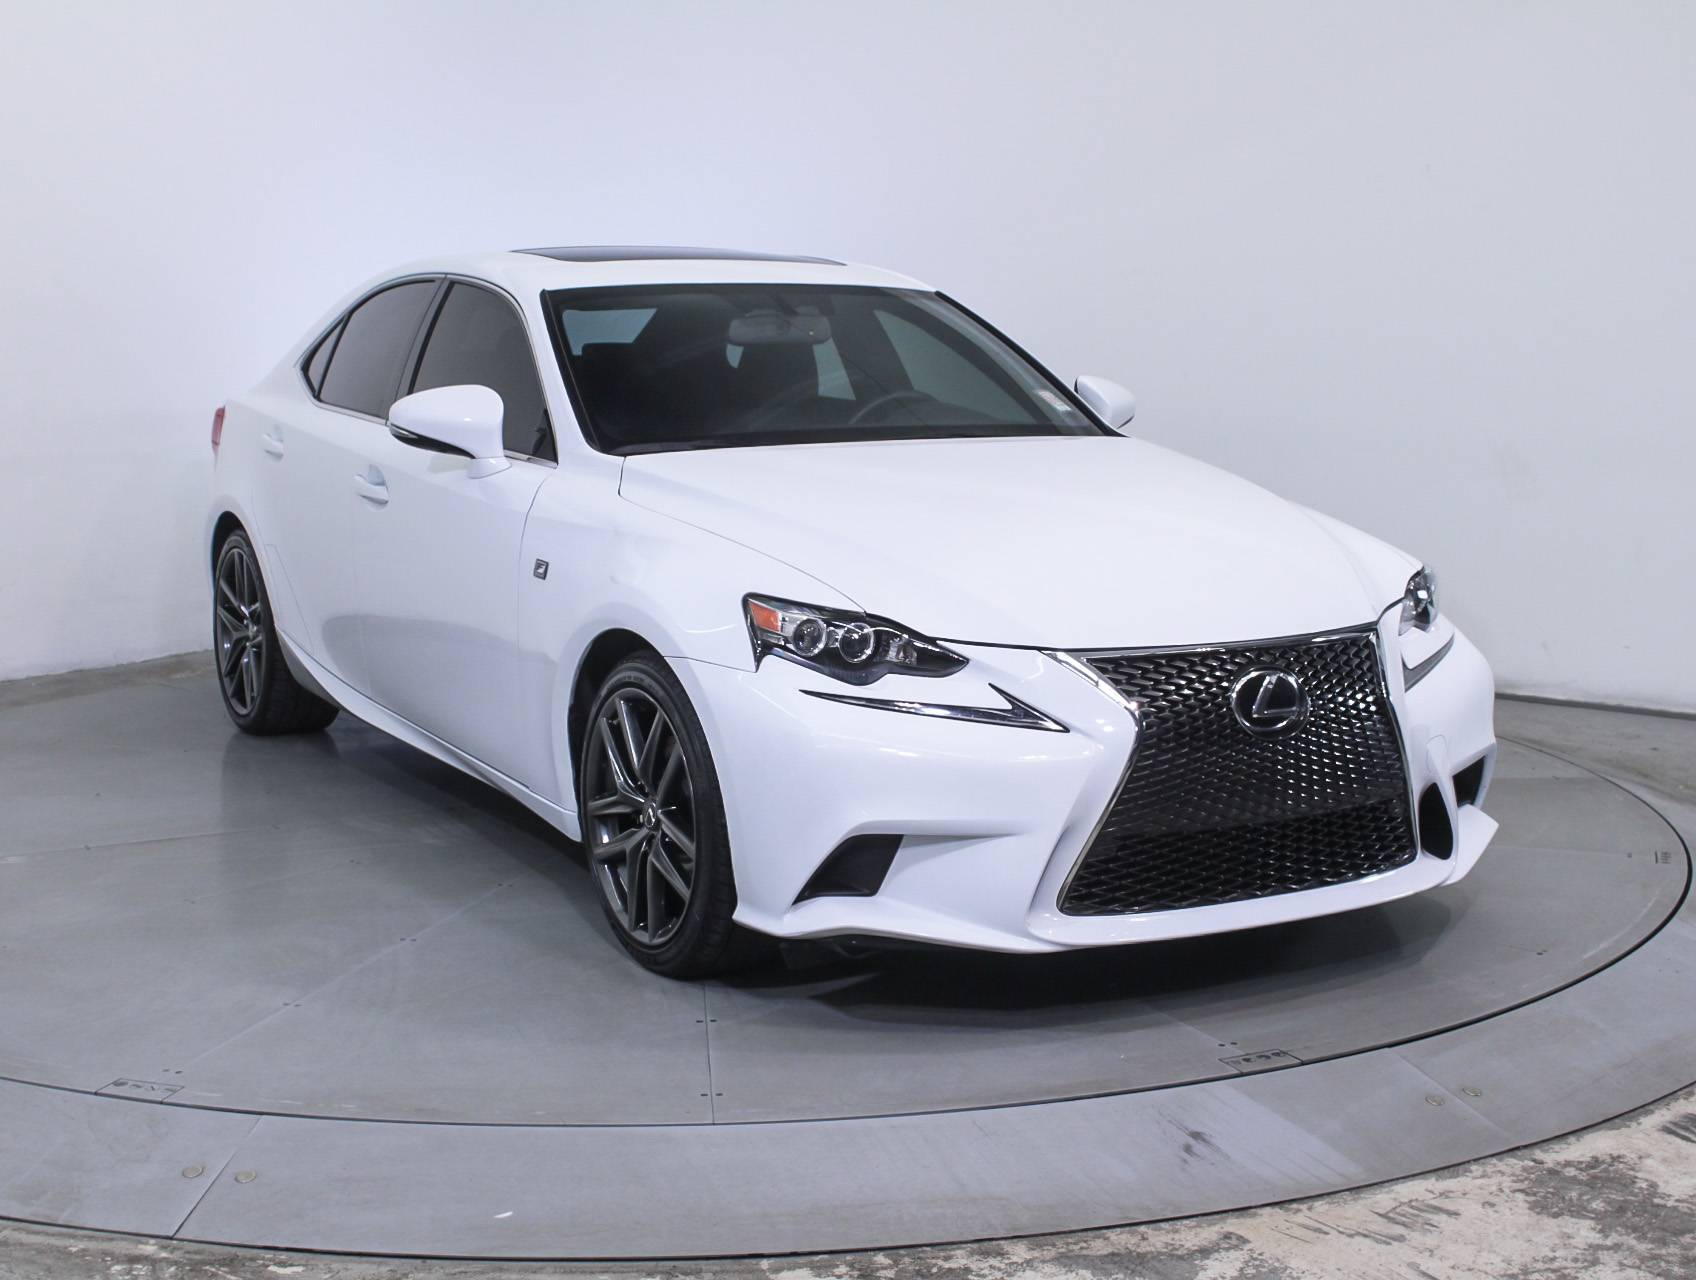 Used 2014 LEXUS IS 250 F Sport Sedan for sale in MIAMI FL